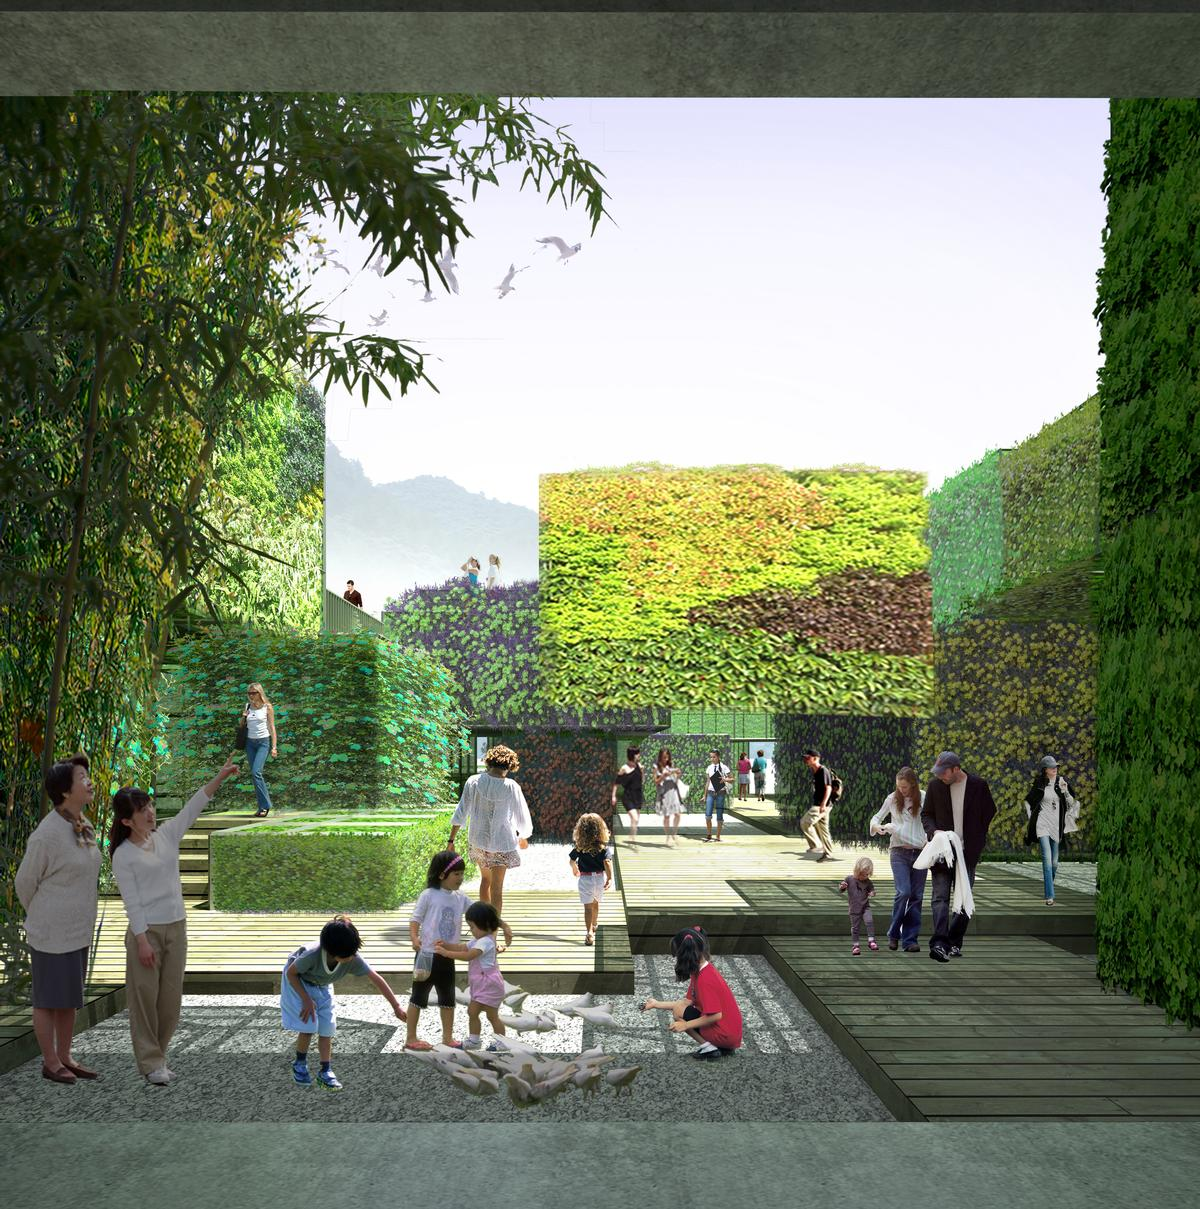 The architects say 'It can be an ecological experimental base and a place where children can get close and explore nature' / Studio Pei-Zhu